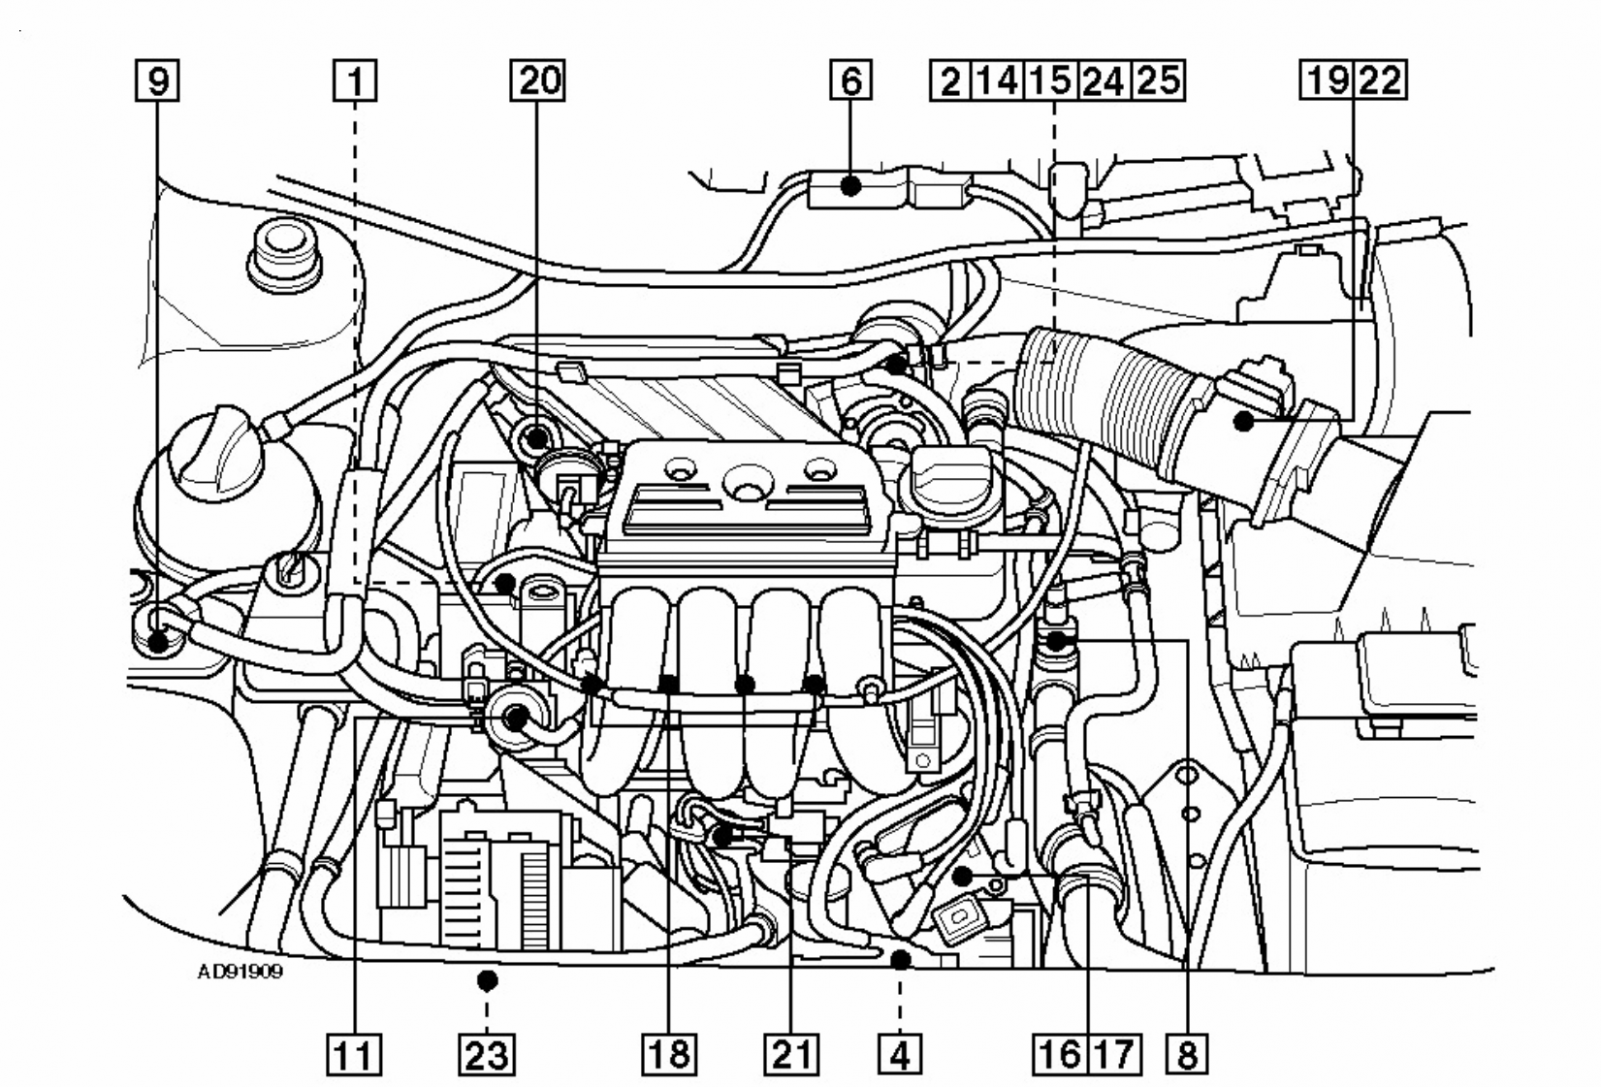 8 volkswagen jetta 8.8 engine diagram di 2020  pinterest